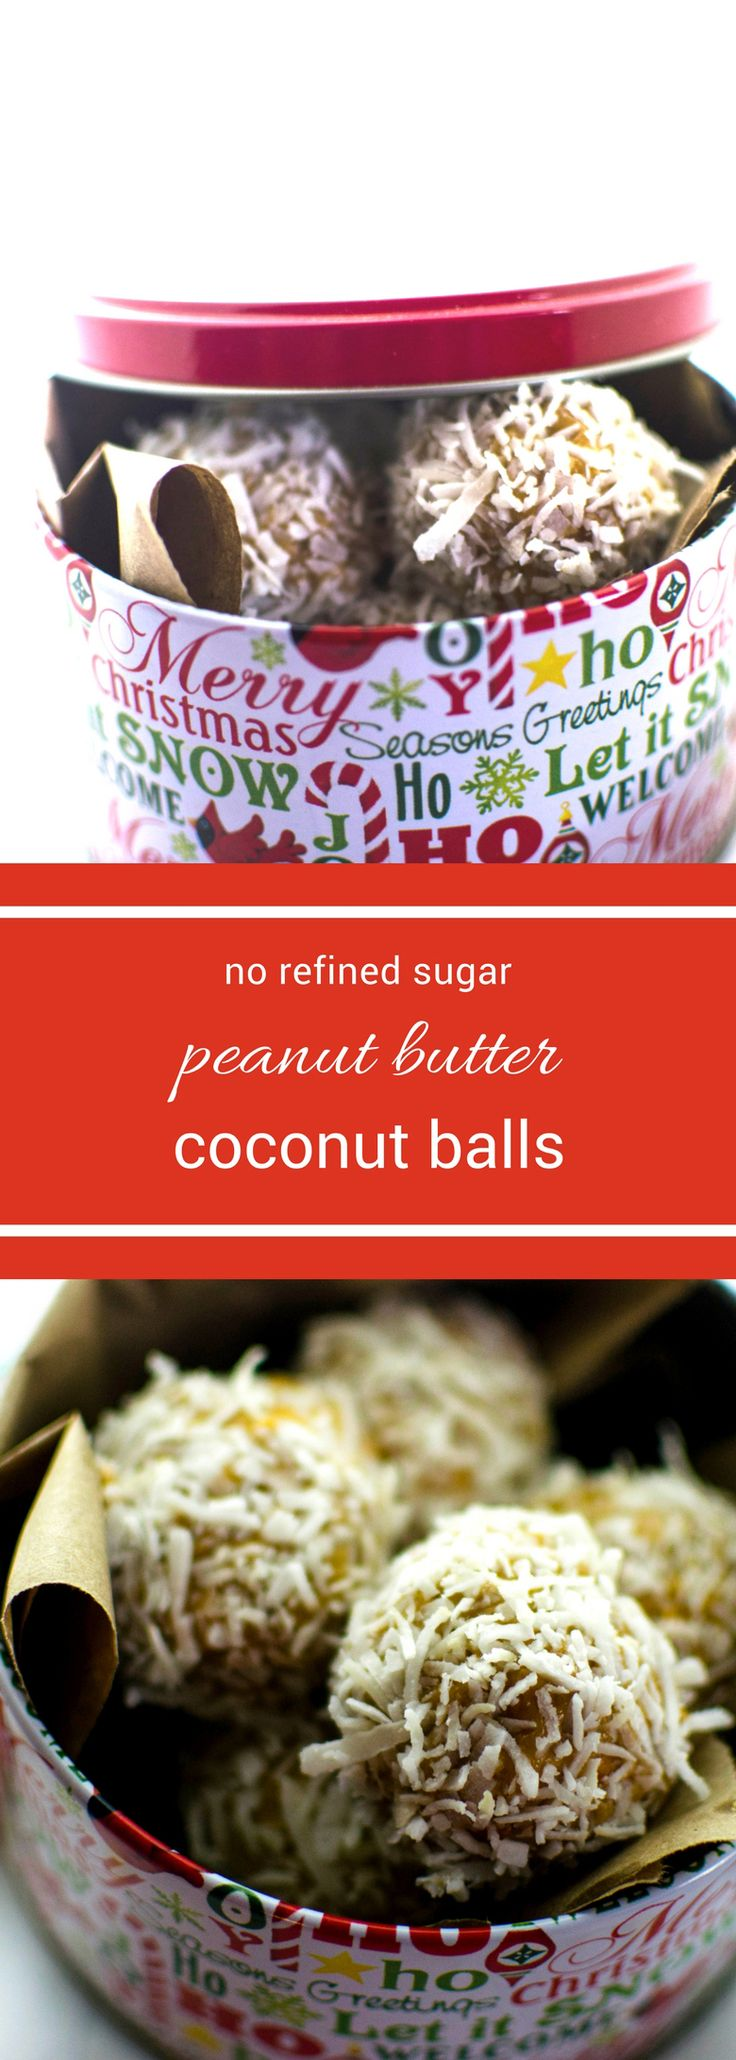 Eating healthy during the holidays is easy with recipes like this one for Peanut Butter Balls. This gluten free holiday recipe has no refined sugar but tastes like a sugary treat! #SundaySupper